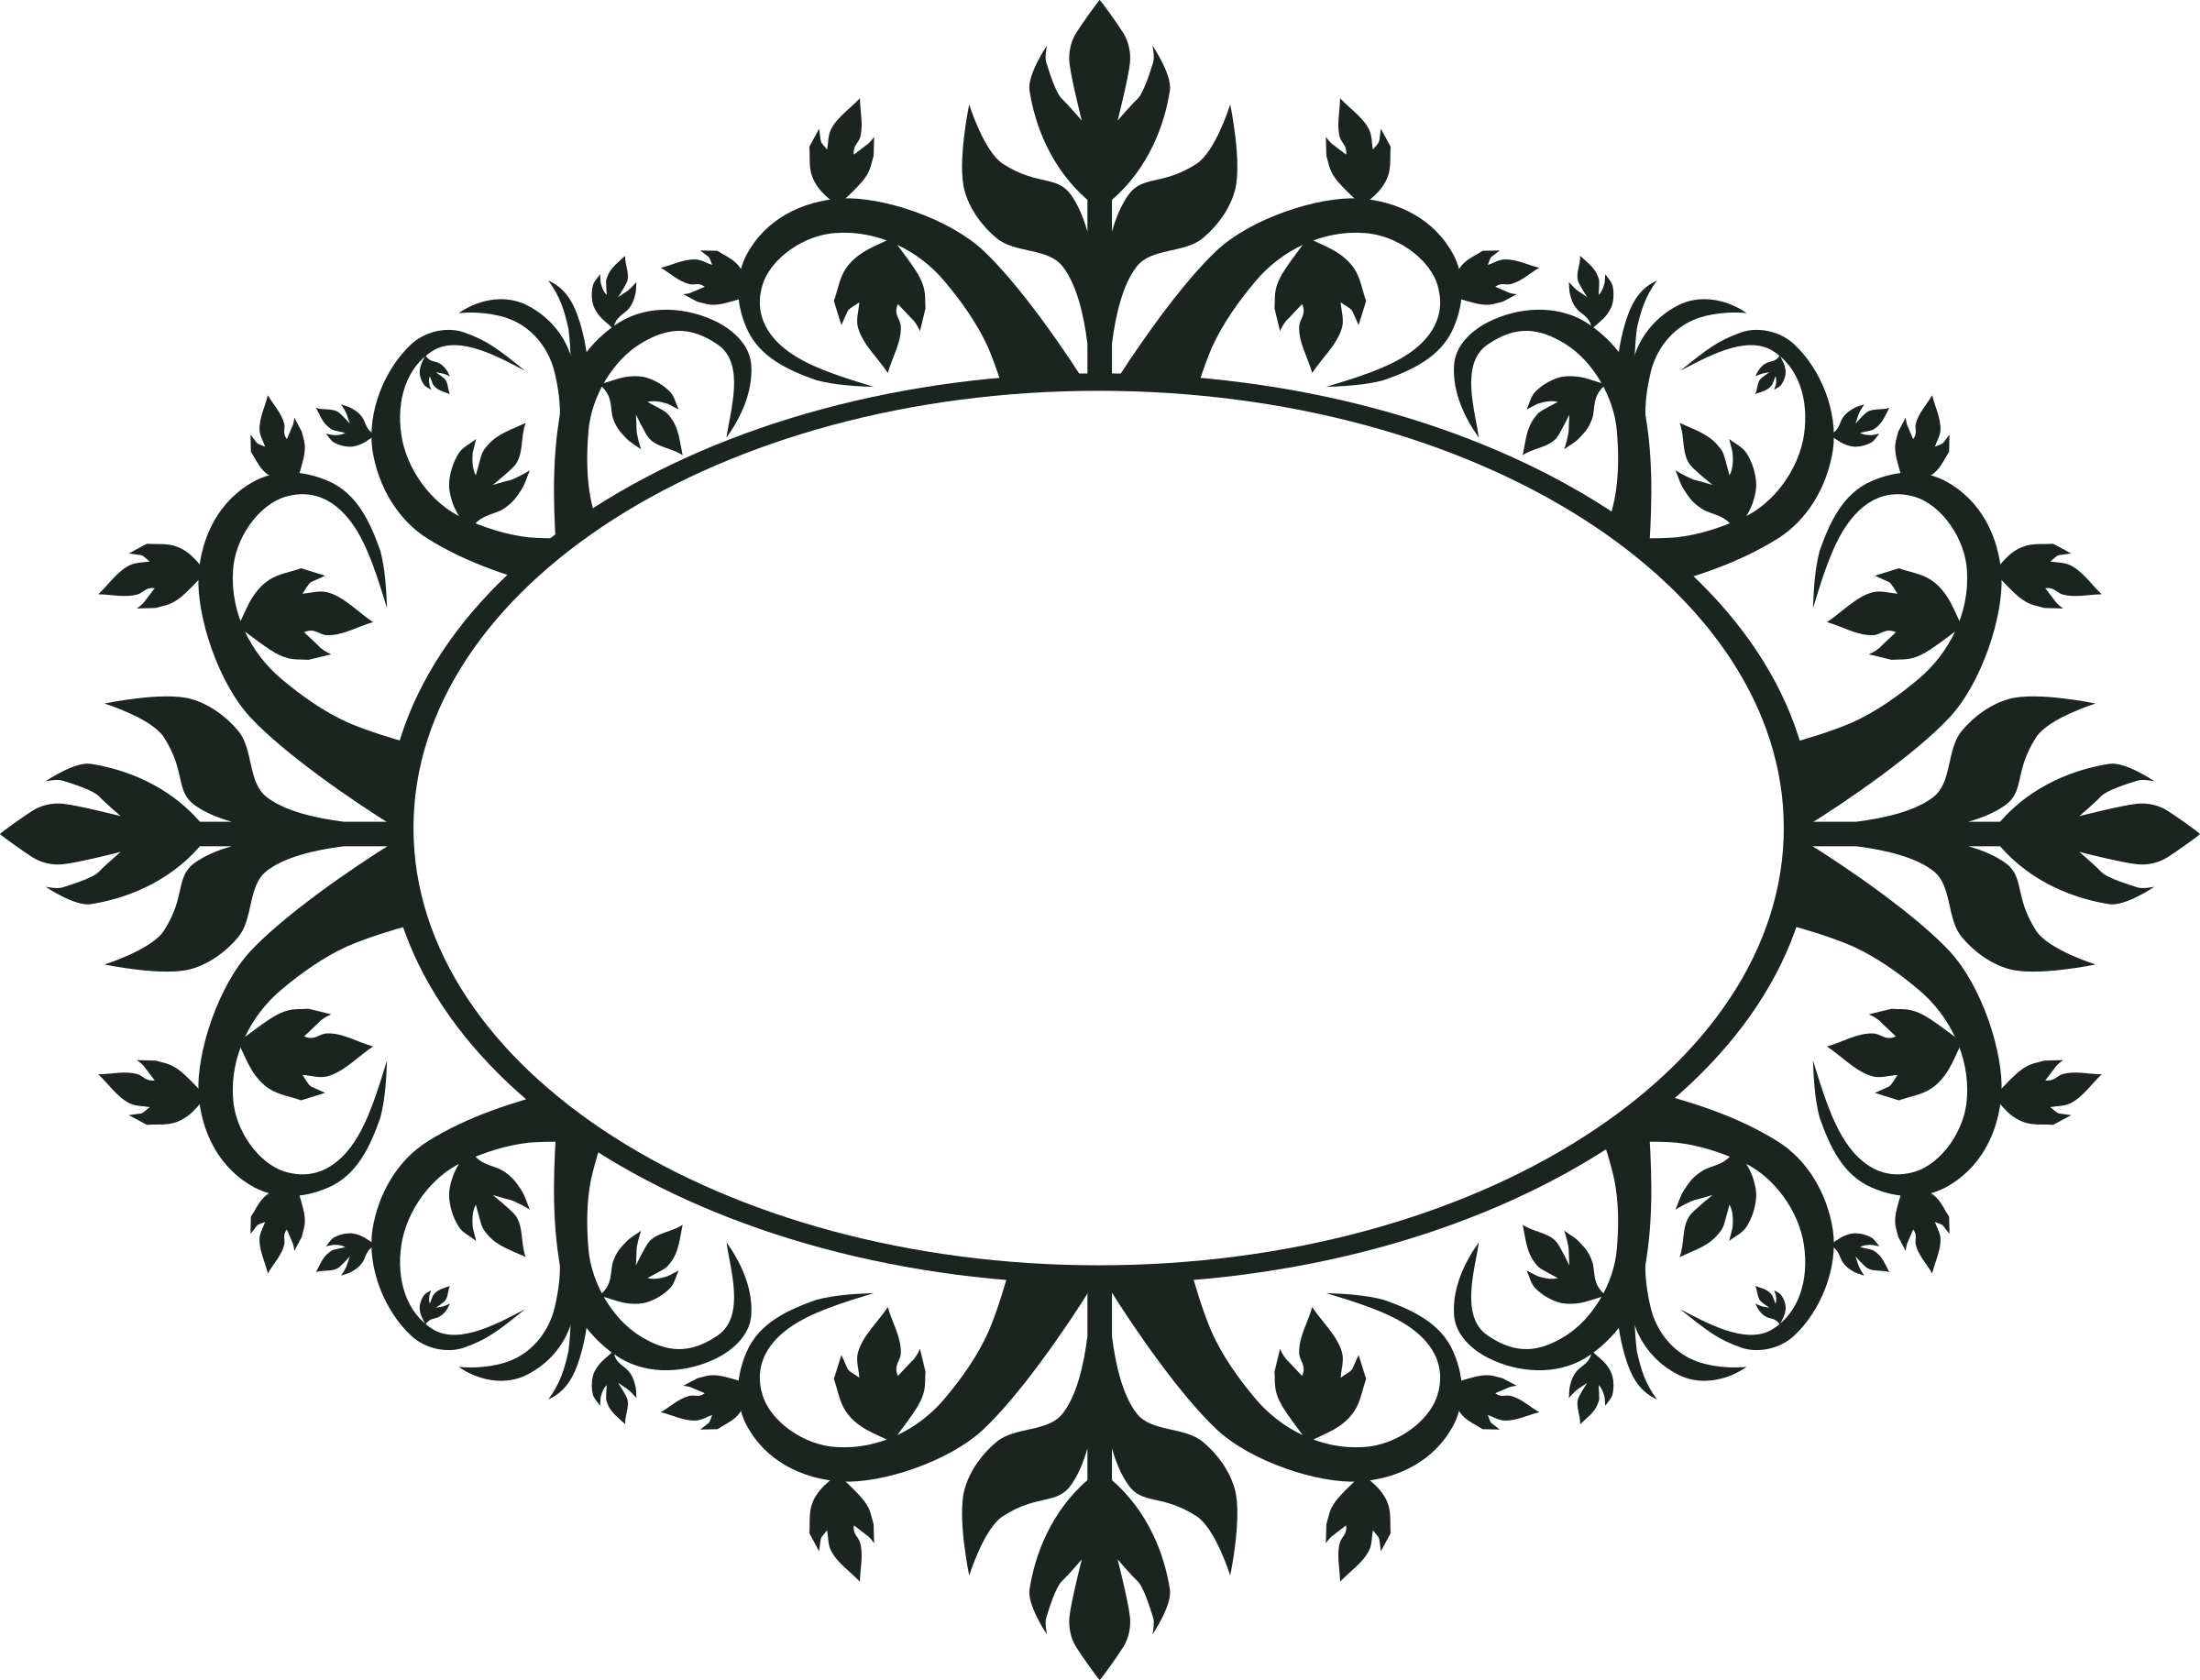 Ornament Oval Frame by jokantola